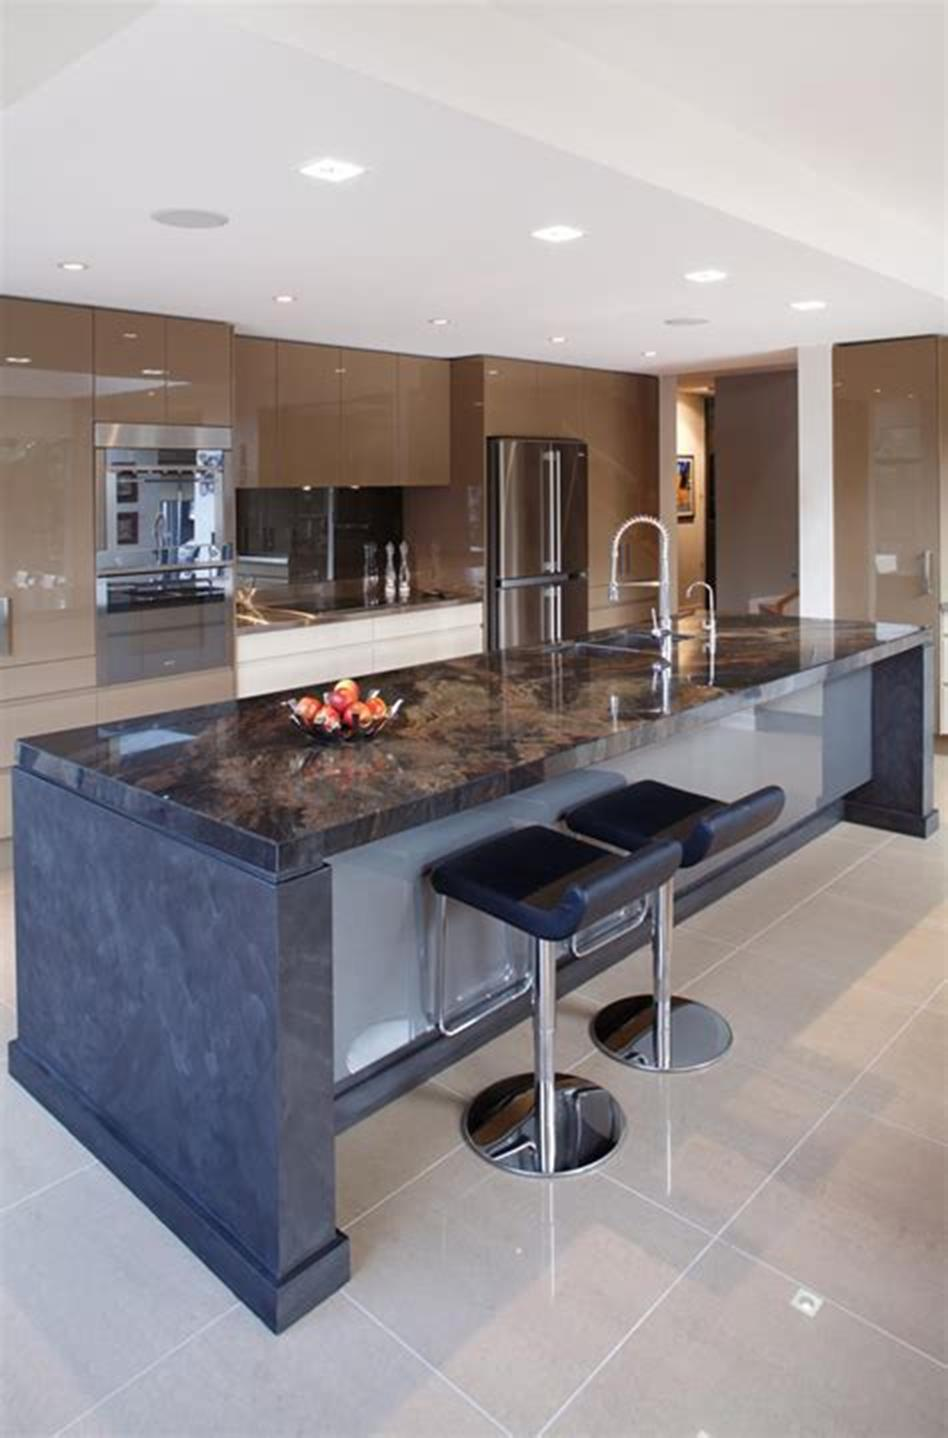 35 Stunning Contemporary Kitchen Design Ideas Youll Love 18